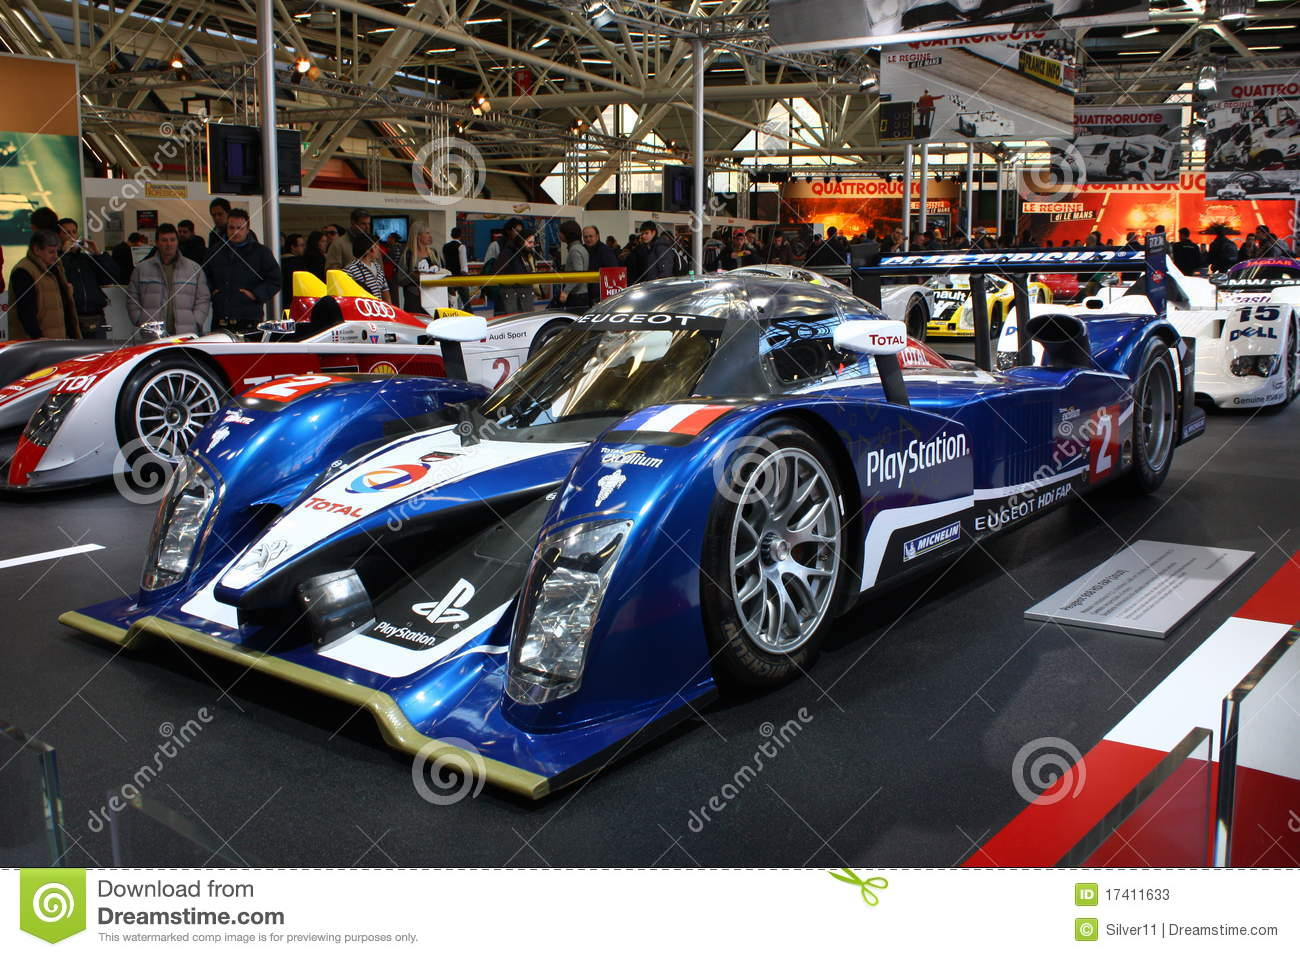 24h le mans race car peugeot 908hdi editorial stock photo image 17411633. Black Bedroom Furniture Sets. Home Design Ideas